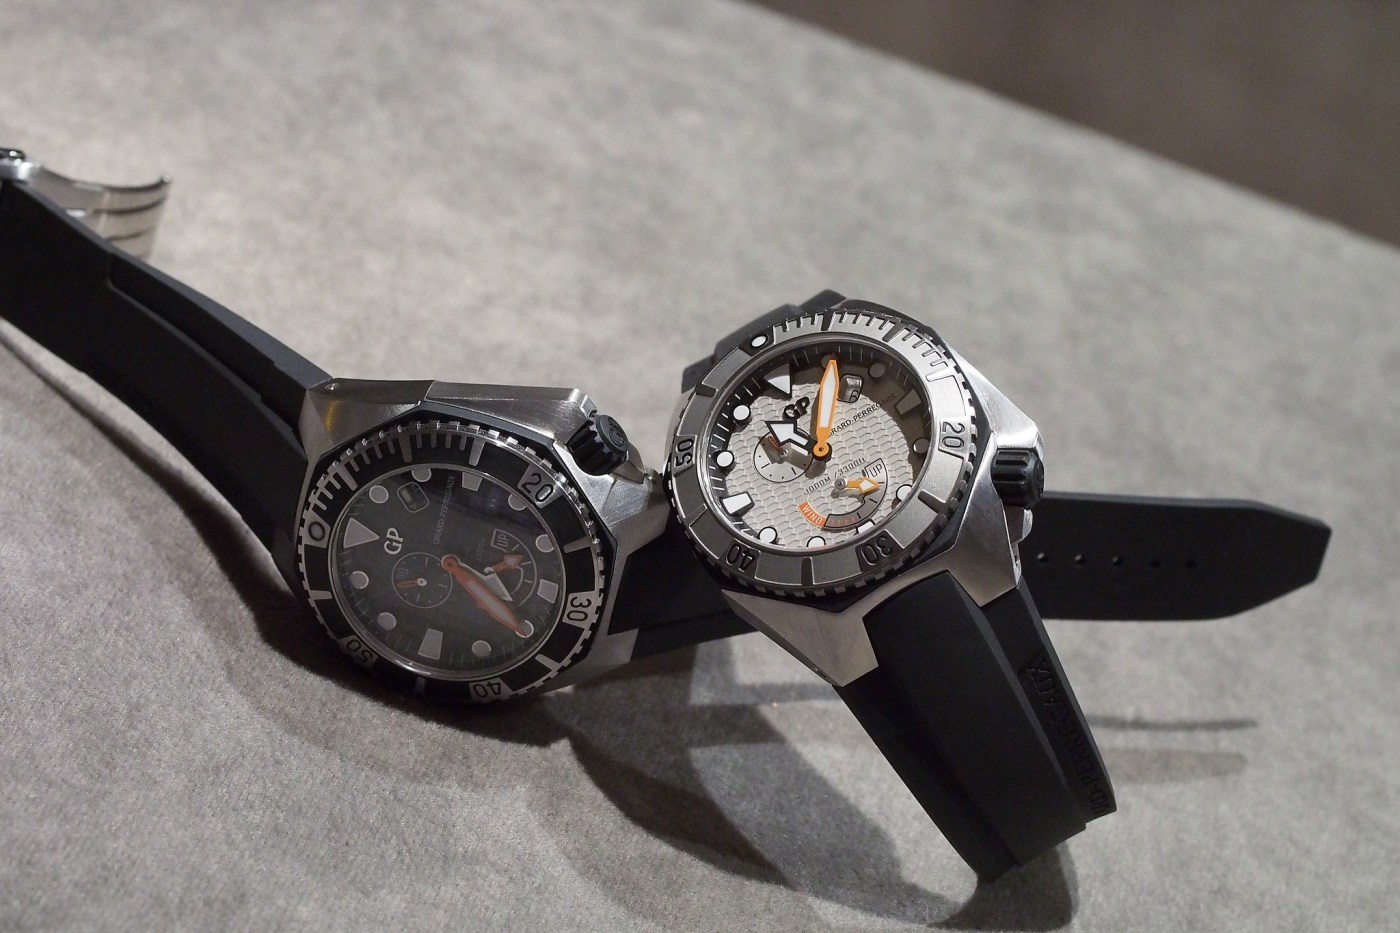 Girard-Perregaux Sea Hawk light gray and black dials